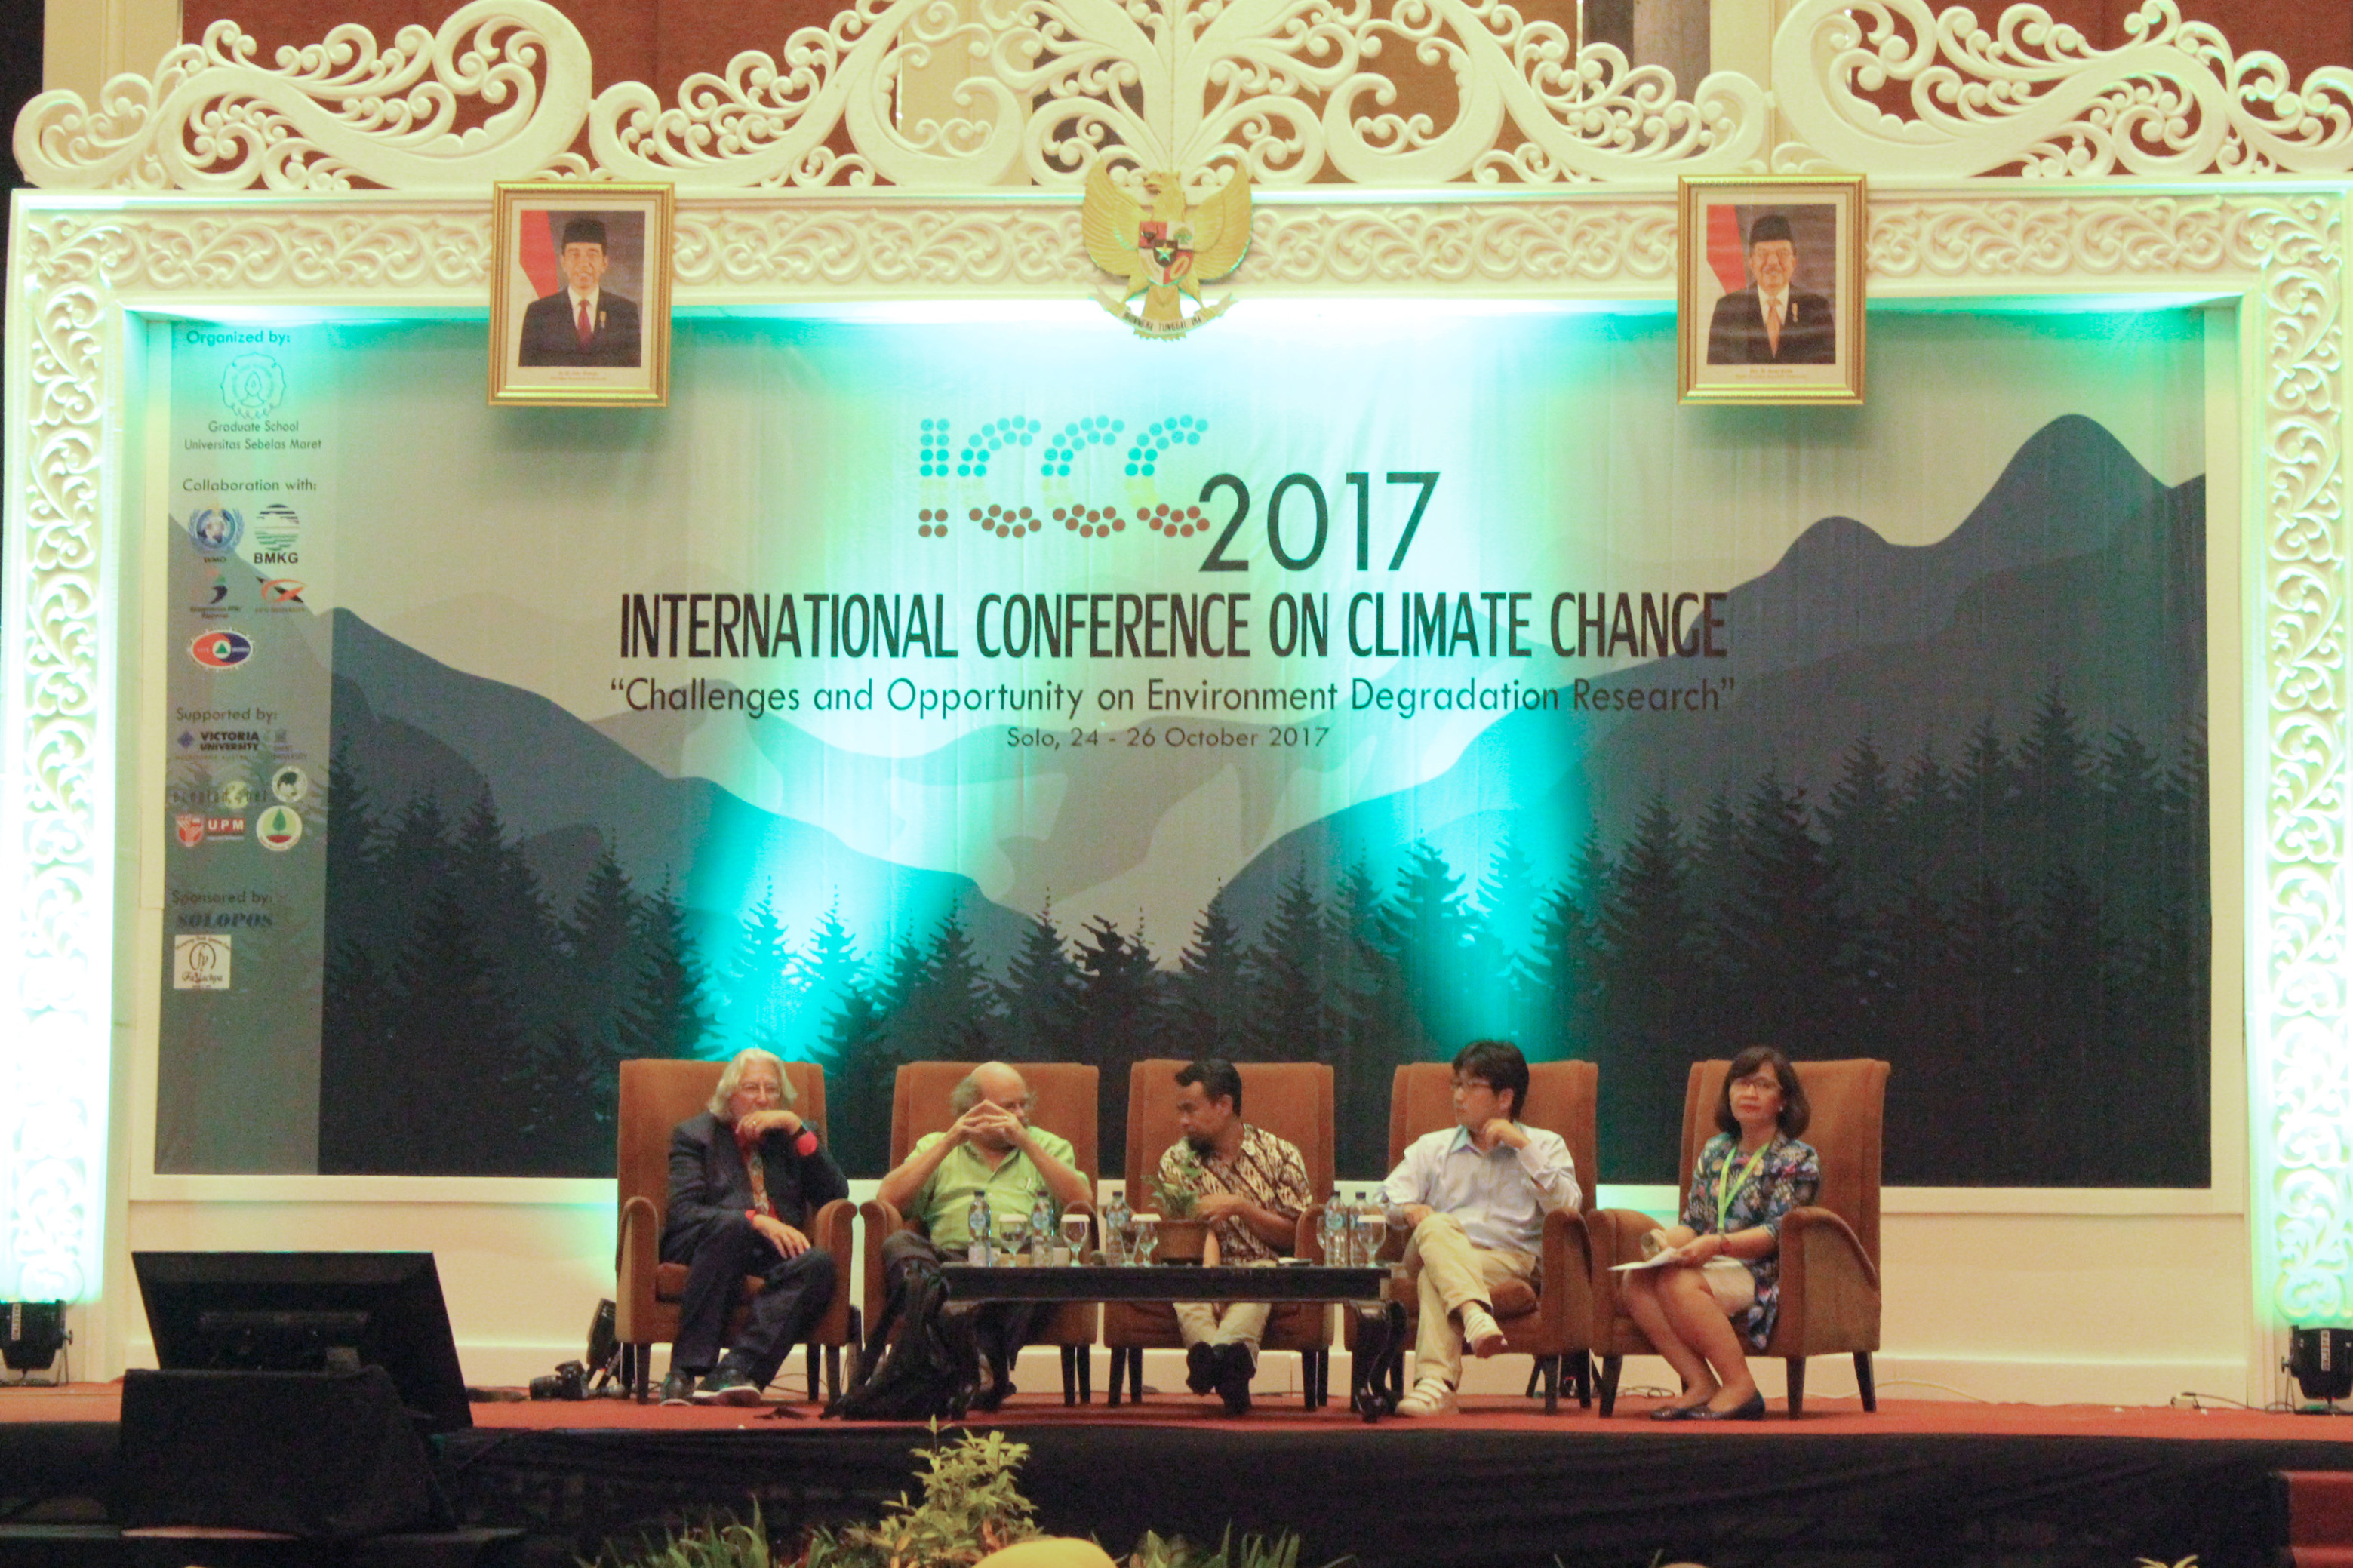 Main Speaker session 3 (Dr. James Macgregor; Prof. Dr. Patrick Van Damme; Dr. Anwar Fitrianto; Assist. Prof. Dr. Keigo Noda; and moderator: Dr. Widyatmani Sih Dewi)